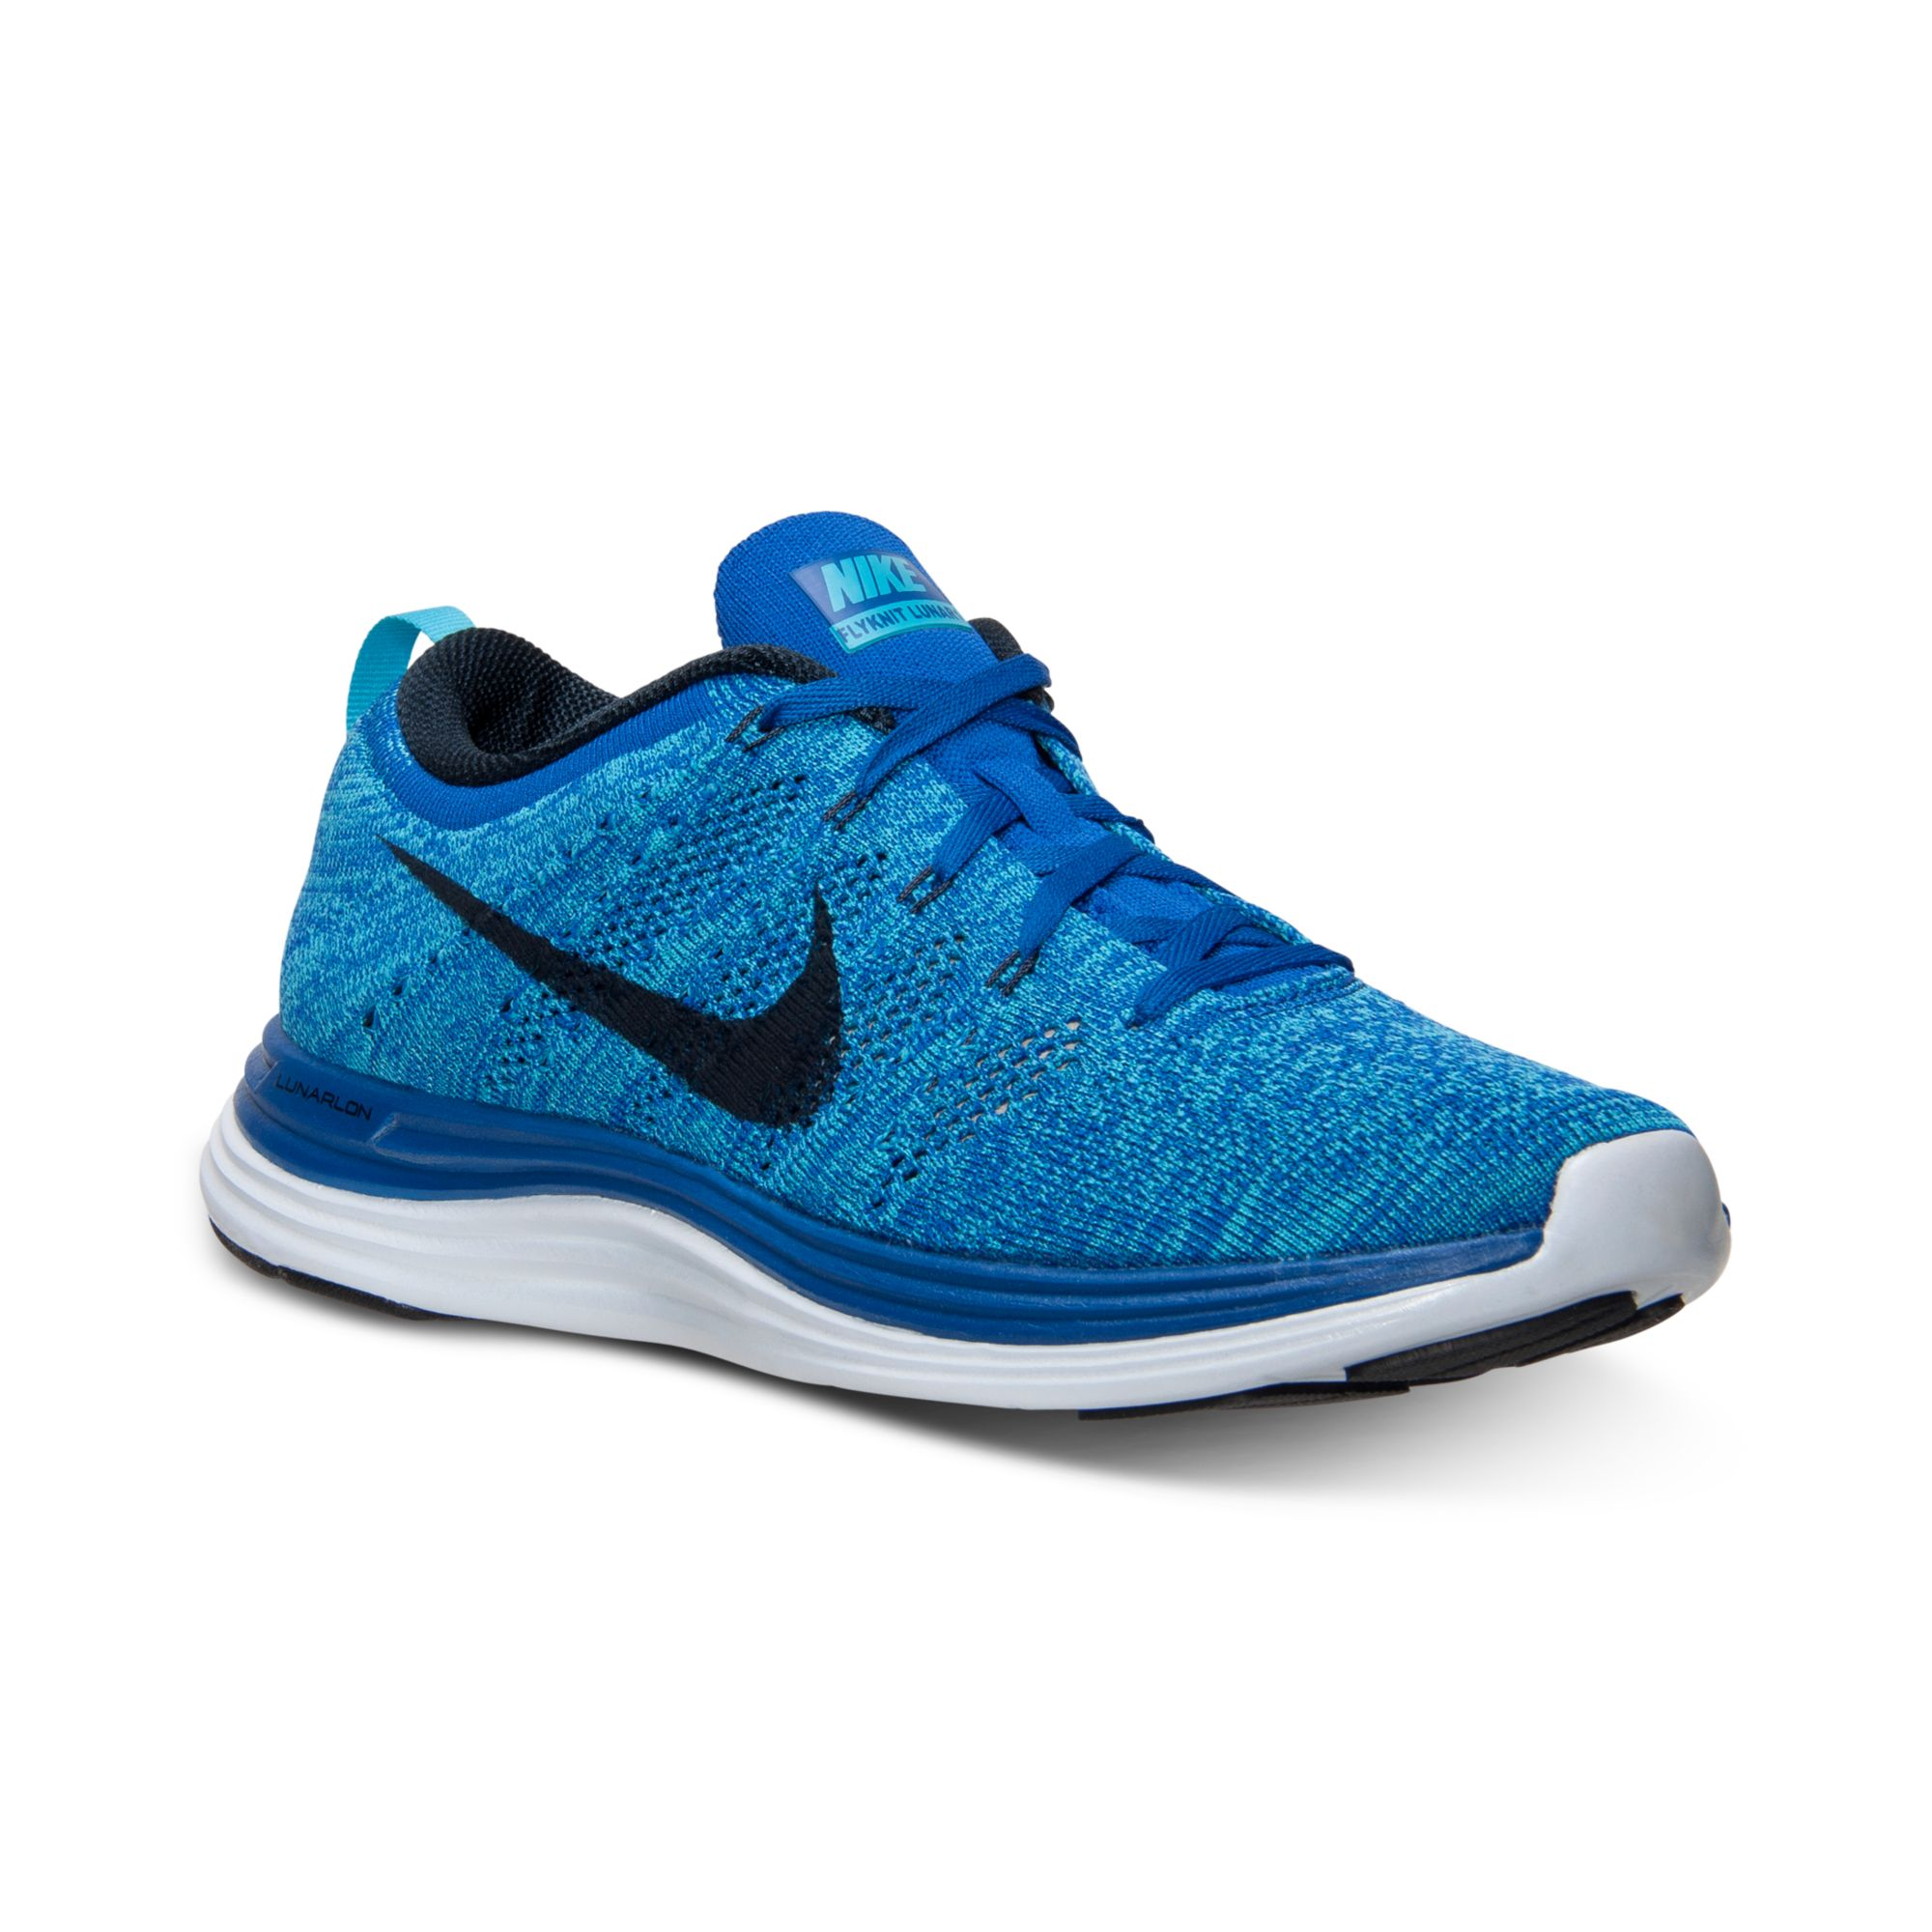 419c2c0a498d92 ... store lyst nike flyknit lunar1 running sneakers from finish line in  blue 38f92 2cb65